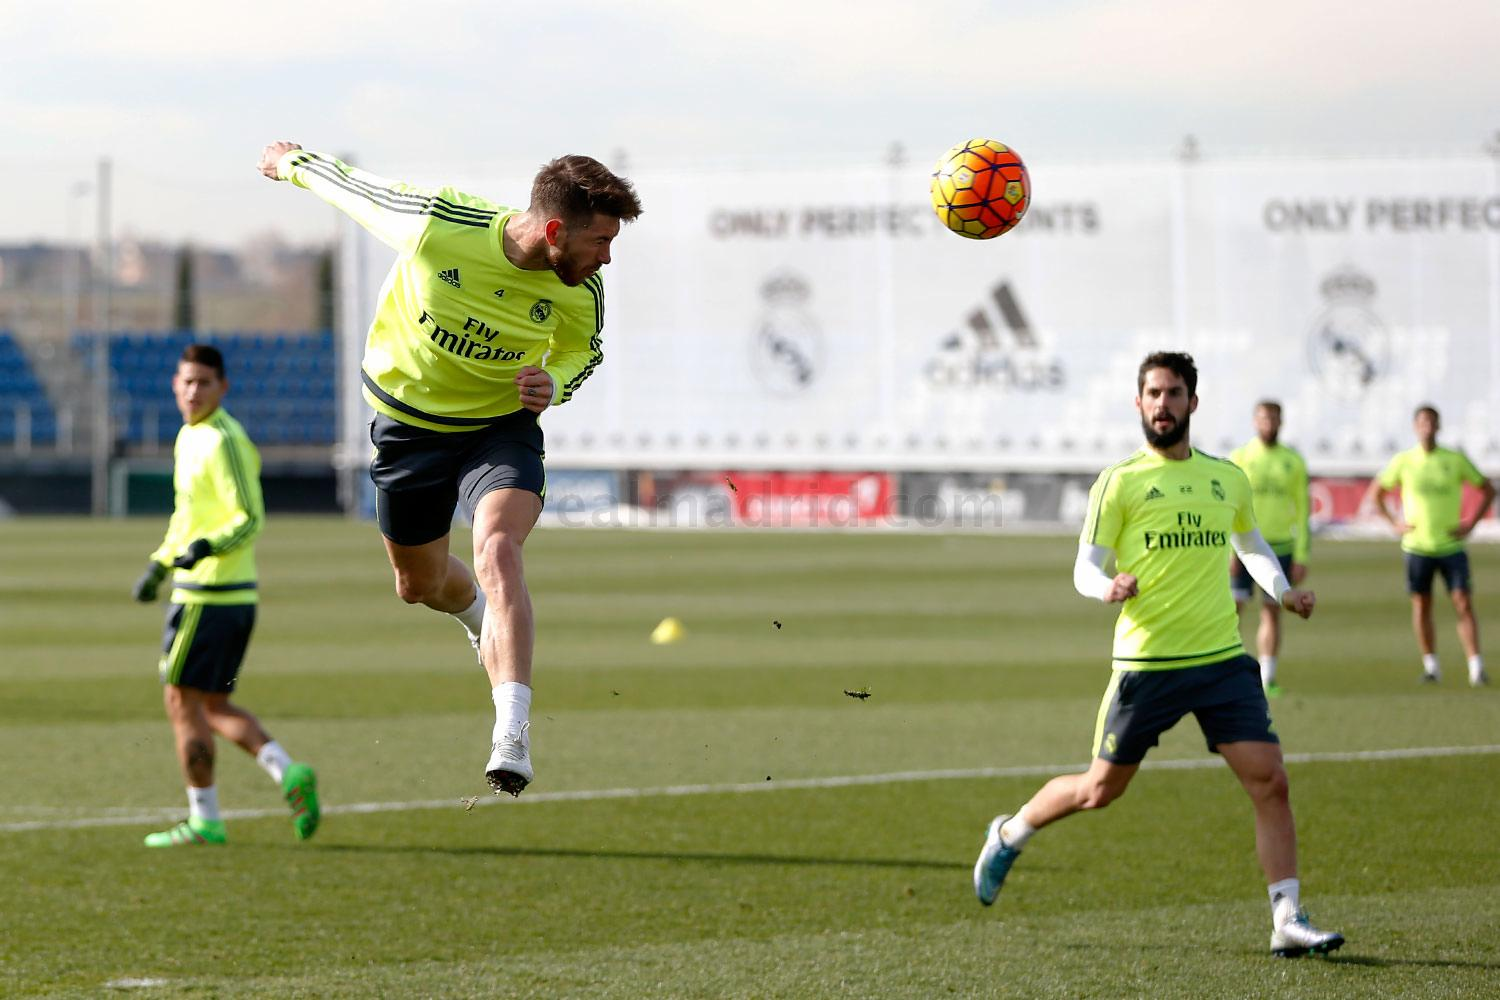 Real Madrid - Entrenamiento del Real Madrid - 05-02-2016